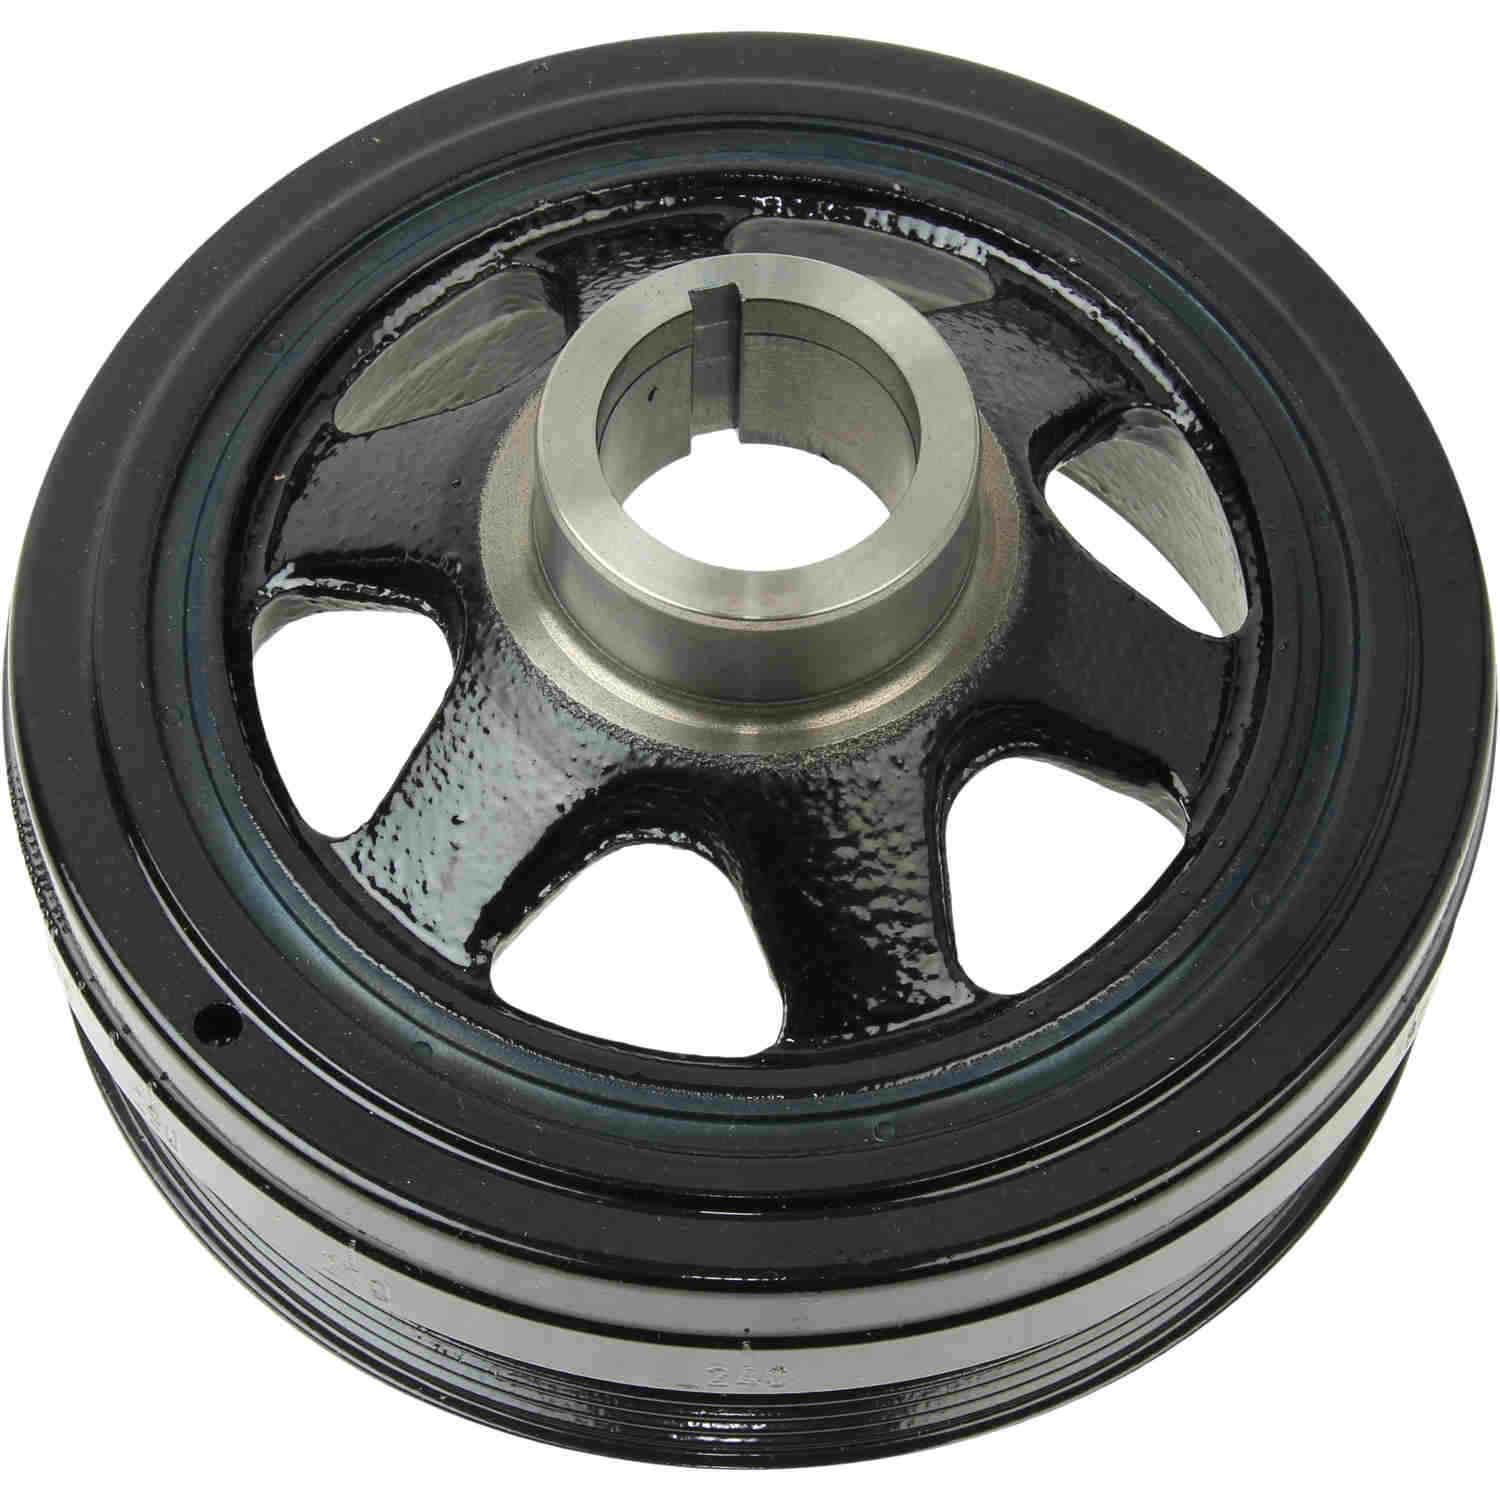 Mercedes Crankshaft Pulley 0011022829 / 272 030 09 03 / 2720300903